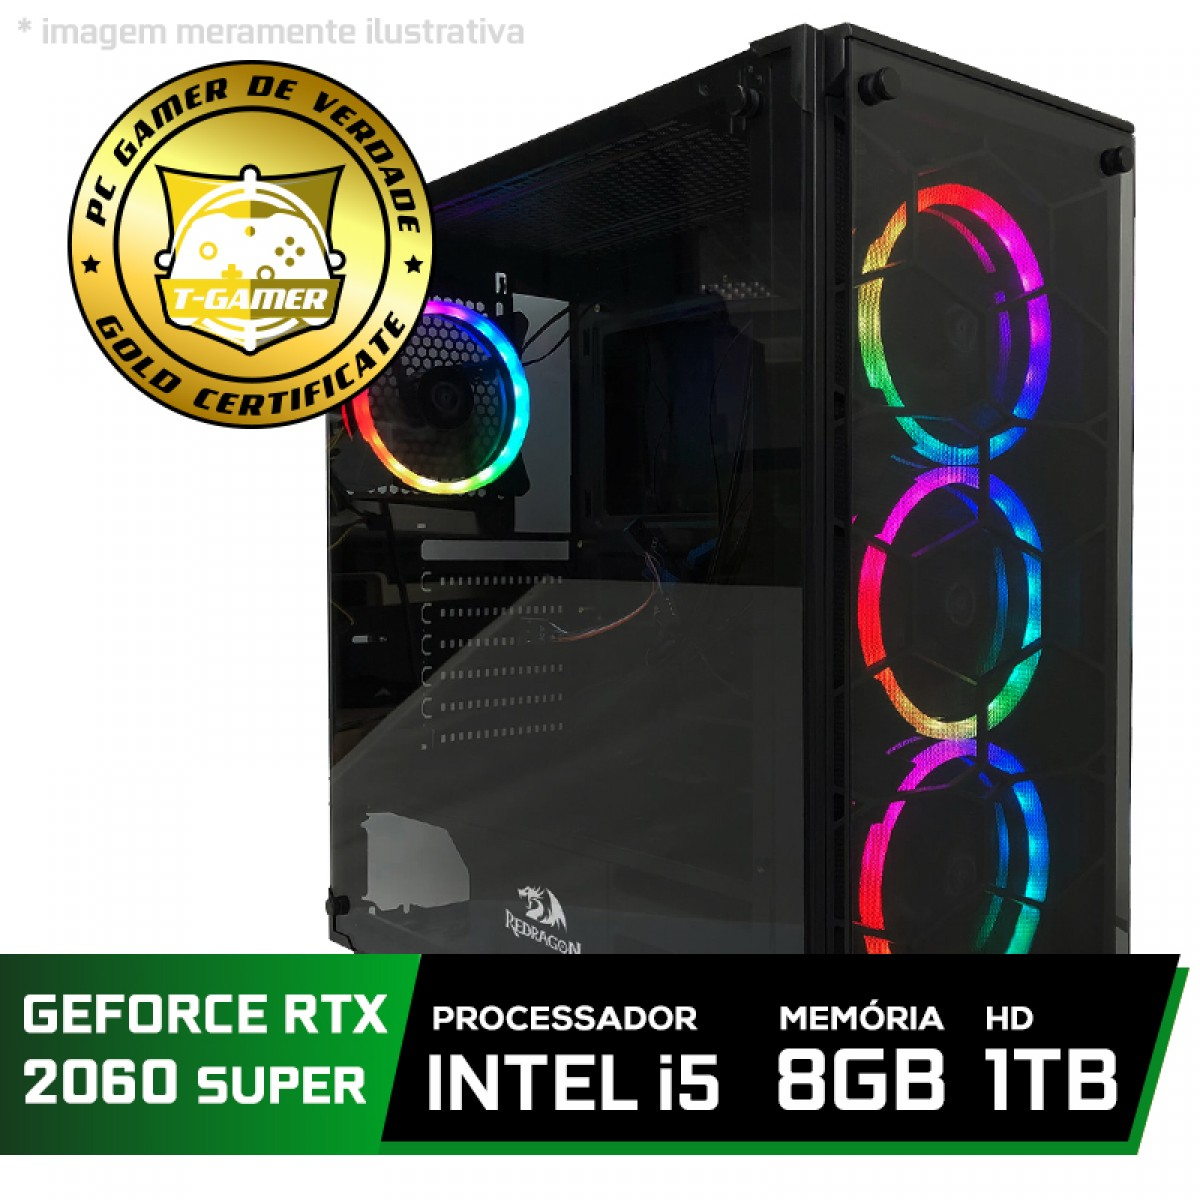 Pc Gamer Tera Edition Intel Core i5 9400F / GeForce RTX 2060 Super / DDR4 8Gb / HD 1TB / 600W